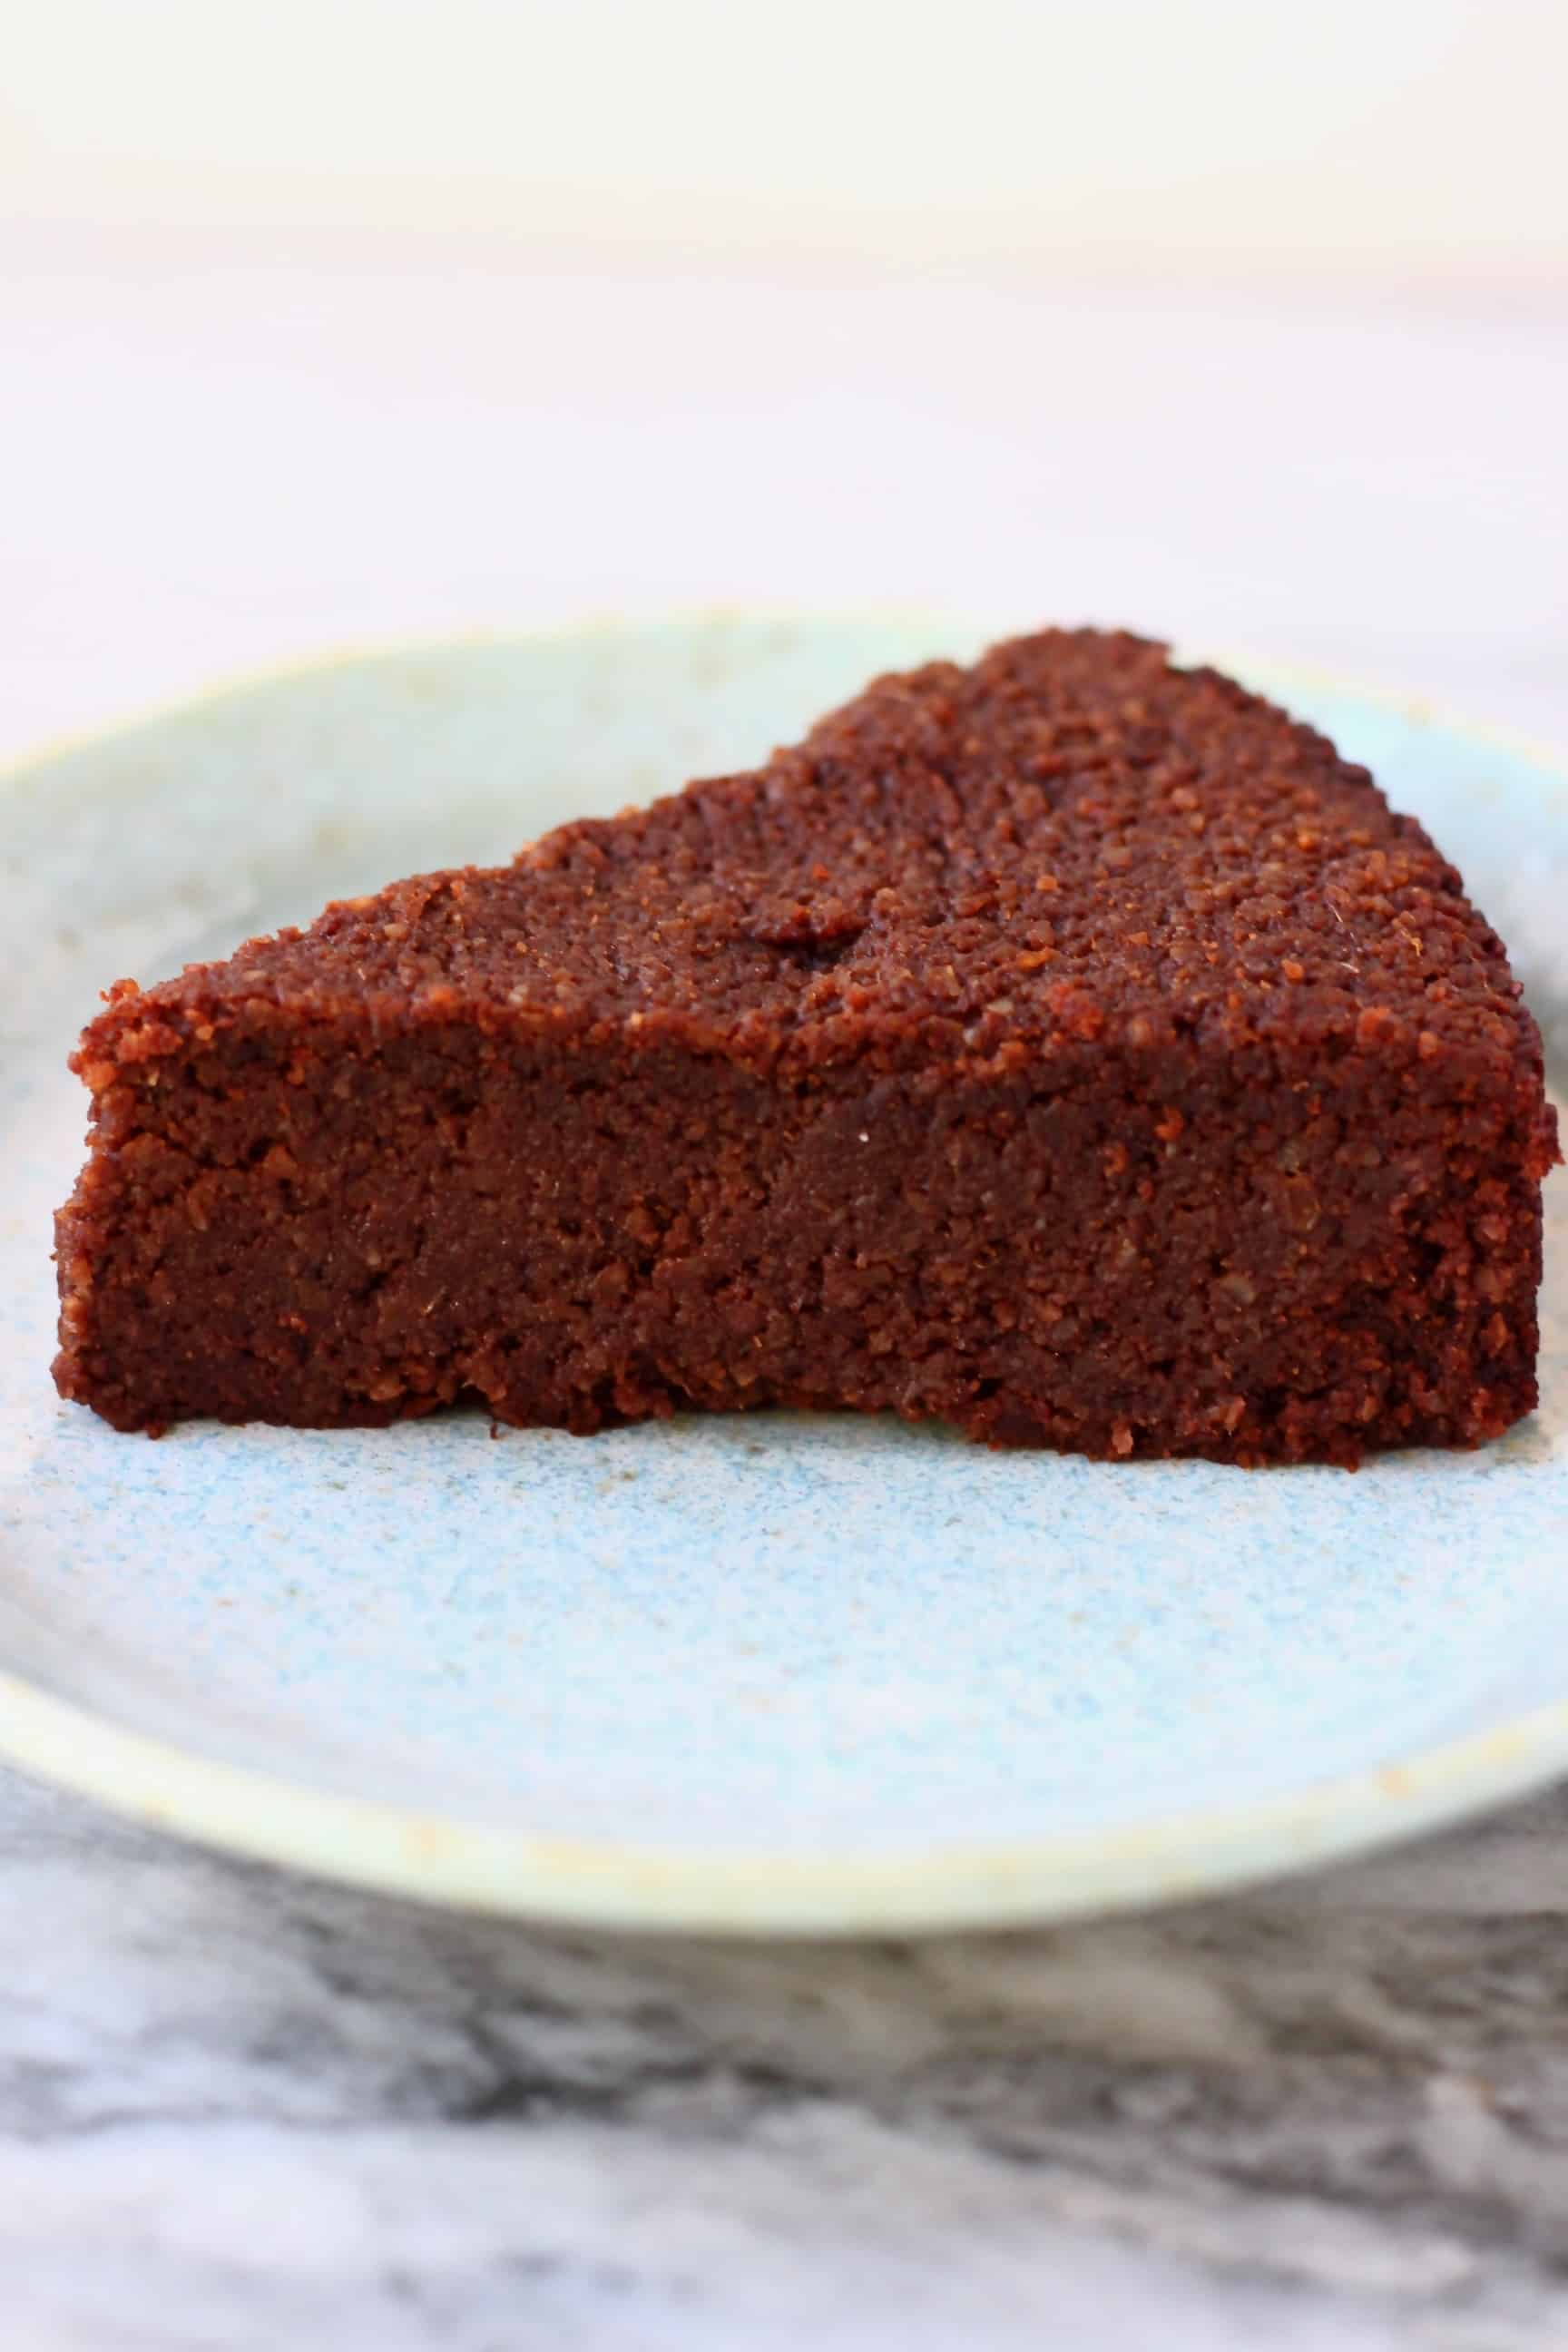 A slice of gluten-free vegan chocolate torte on a blue plate against a marble background